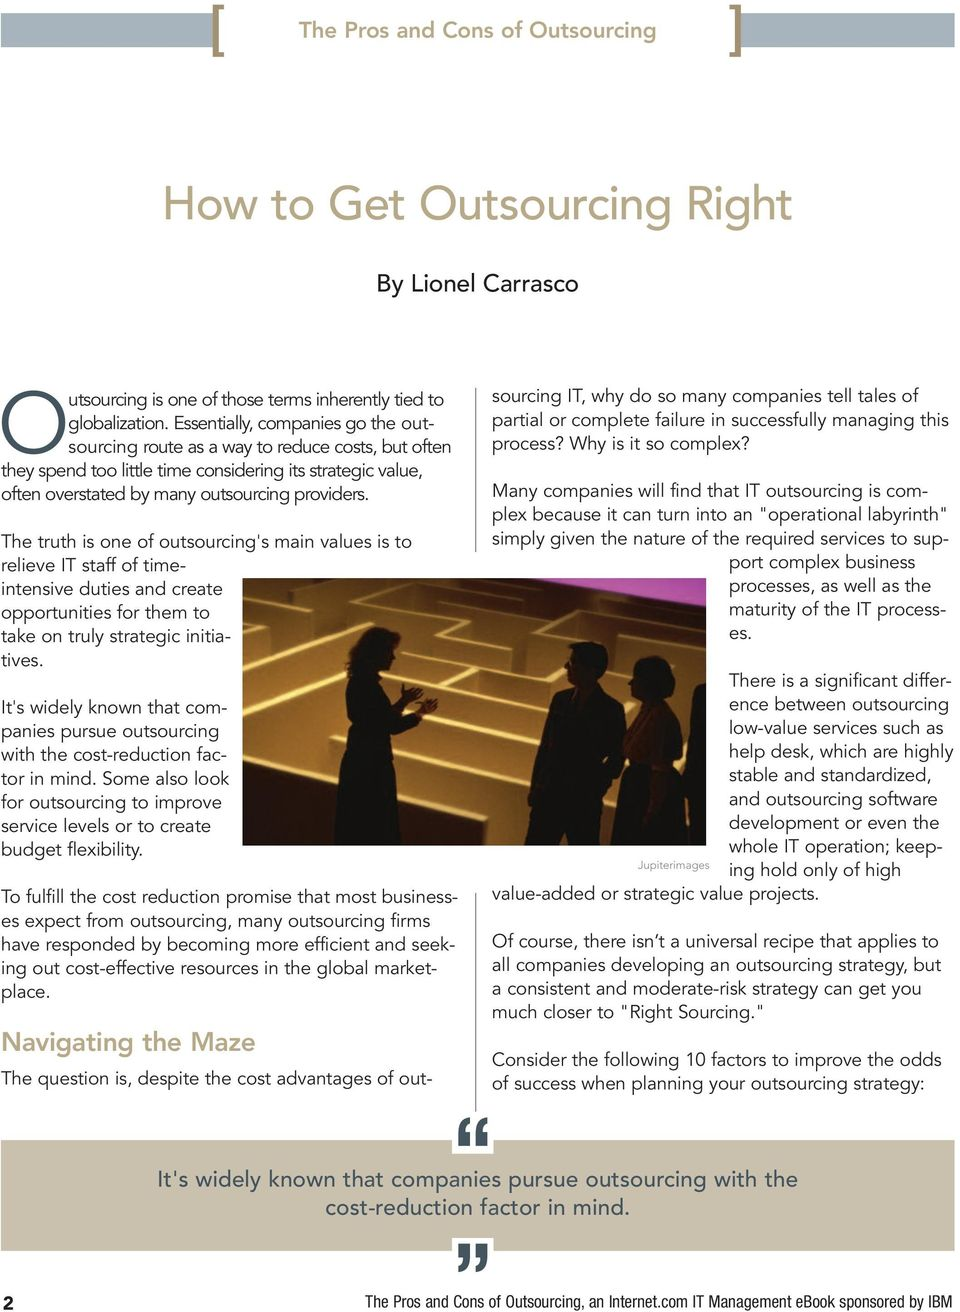 The truth is one of outsourcing's main values is to relieve IT staff of timeintensive duties and create opportunities for them to take on truly strategic initiatives.